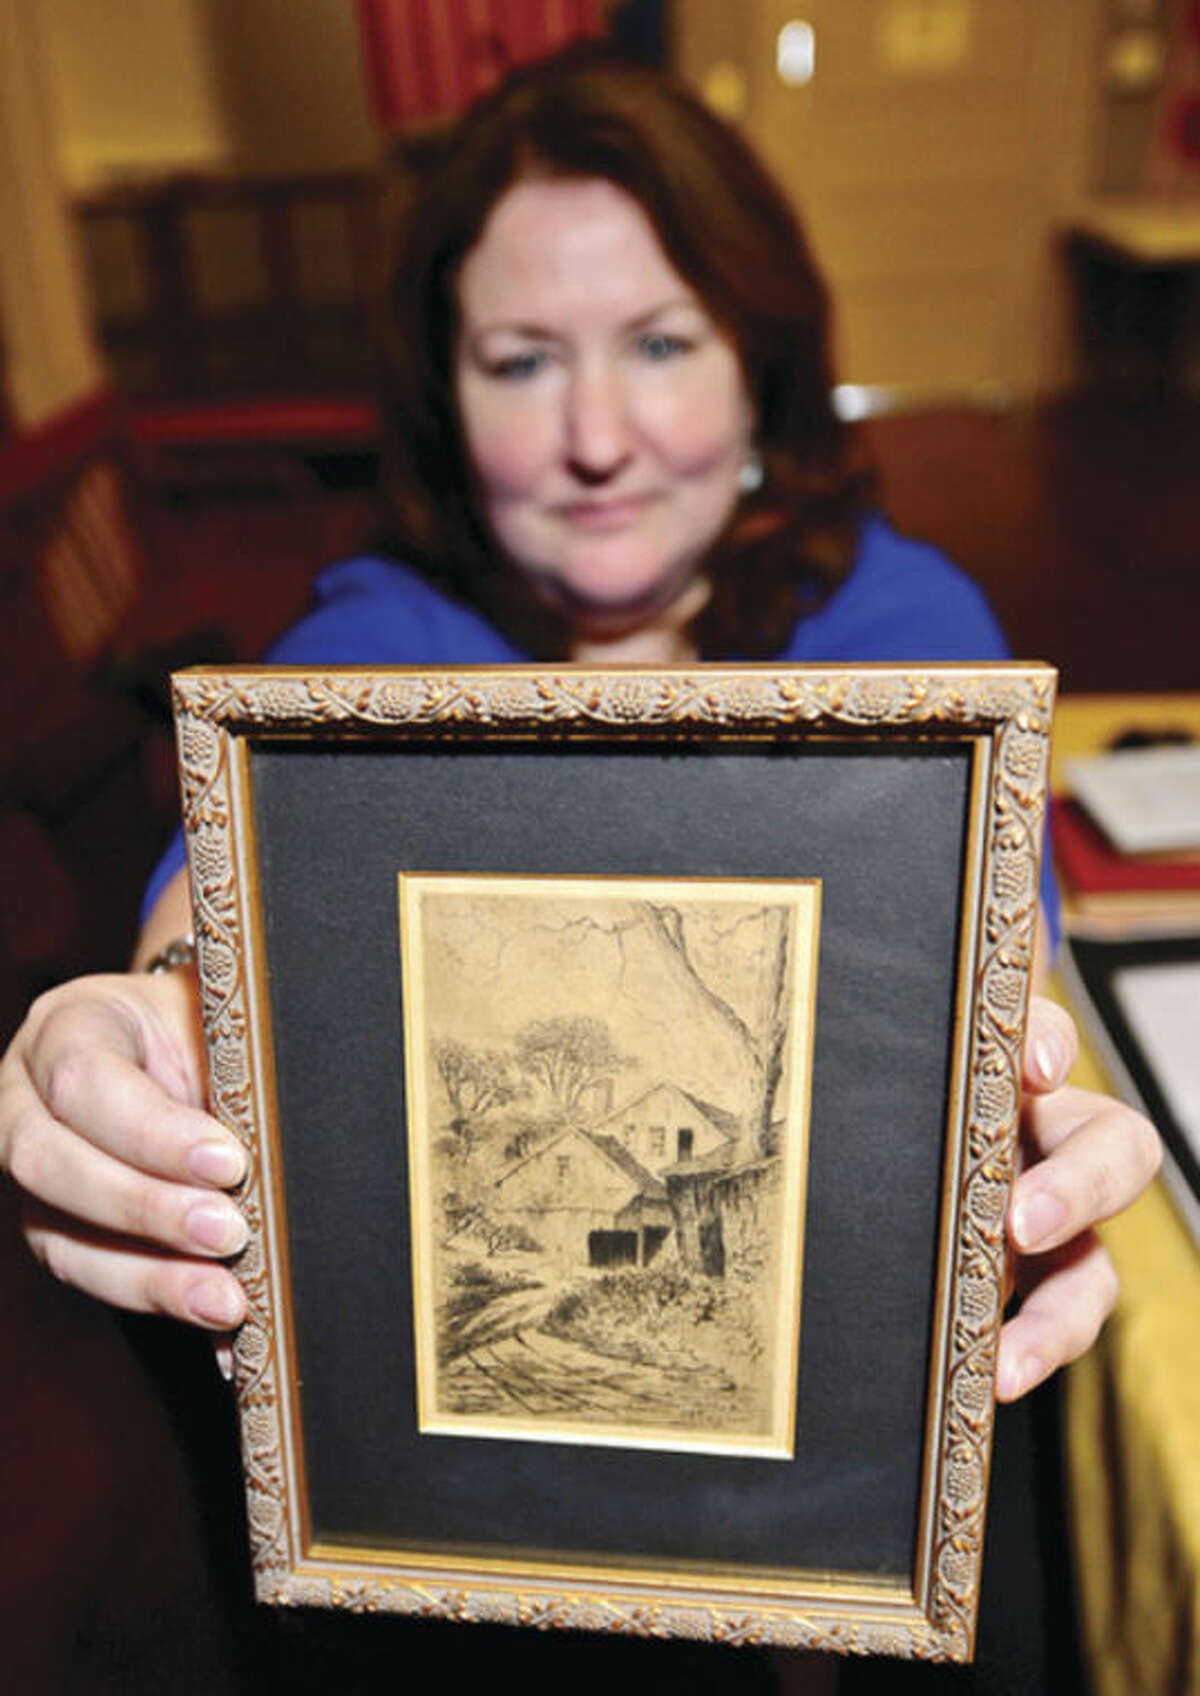 Hour photo / Erik Trautmann Suzanne Betts holds an etching of the old Betts Mill, built in 1709 and was destroyed by fire in 1921. Betts is descended from several of Norwalk's founding families and is currently president of the Norwalk Historical Society.